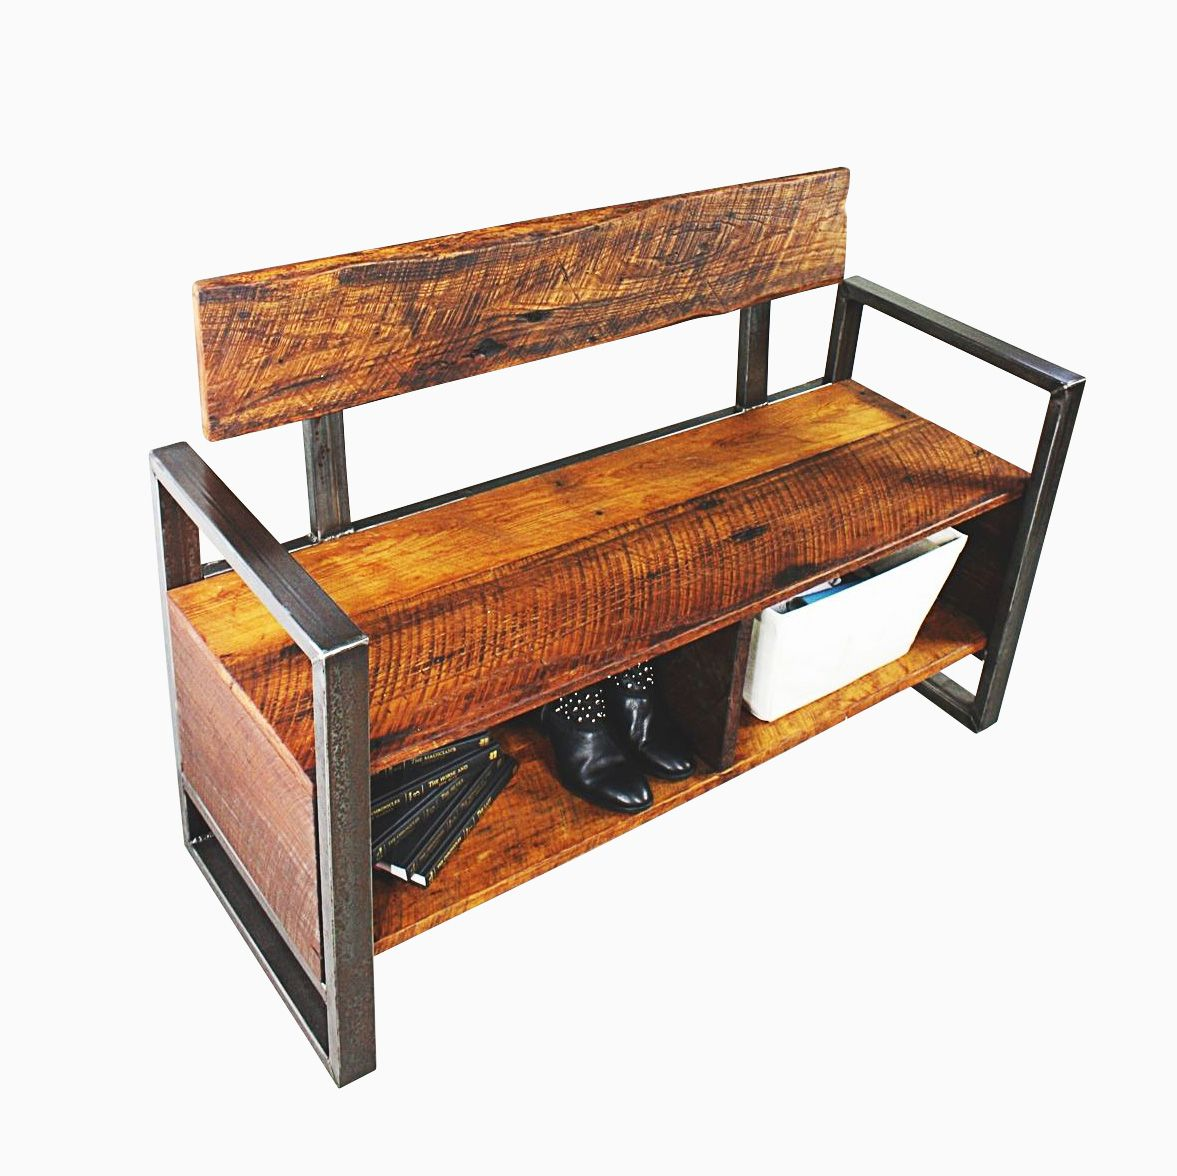 Buy A Custom Unique Reclaimed Wood Storage Foyer Bench Made To Order From What We Make